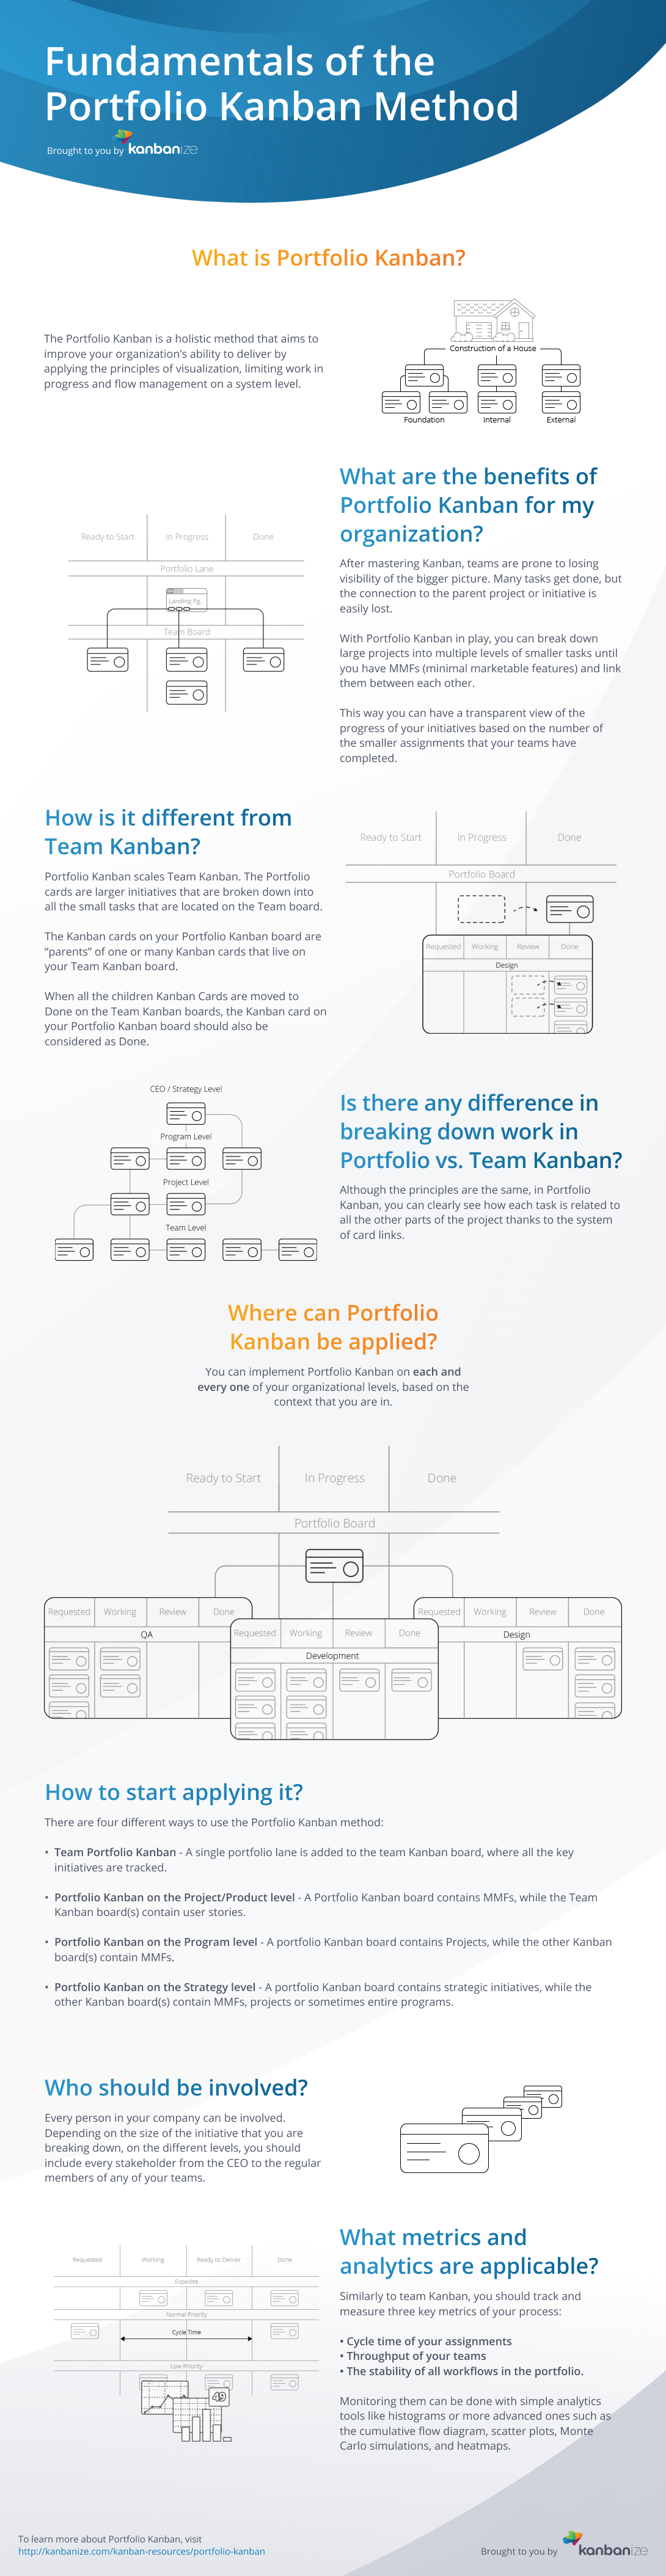 The Fundamentals of Portfolio Kanban Method